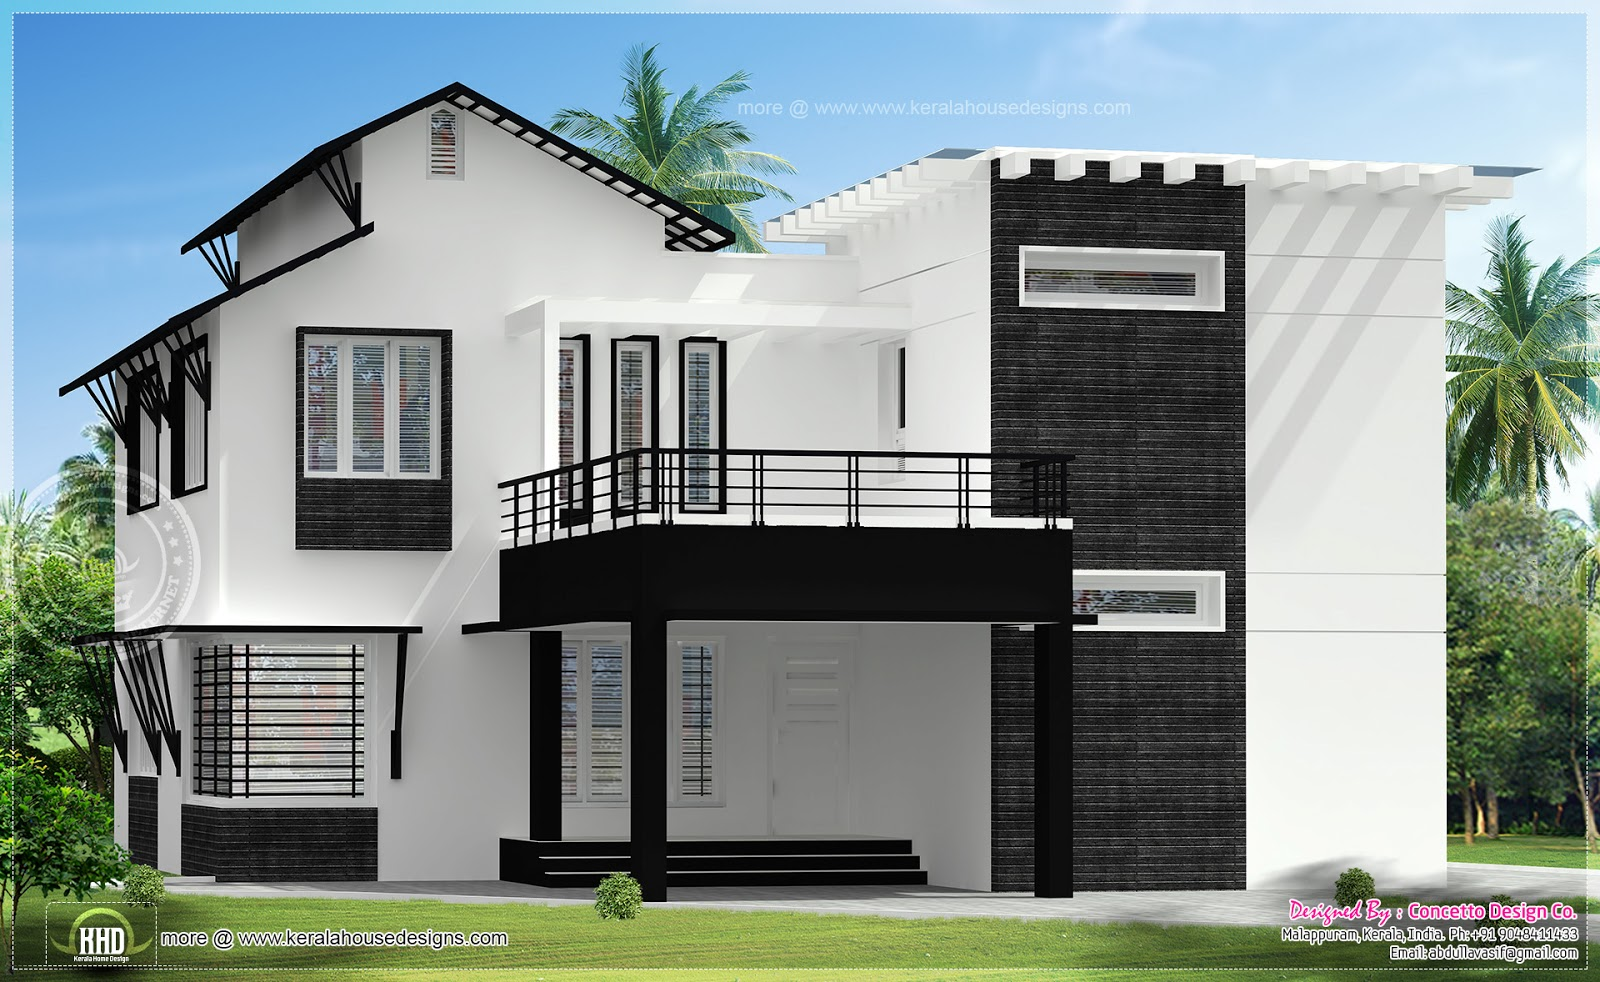 5 different house exteriors by concetto design kerala for House plans architect